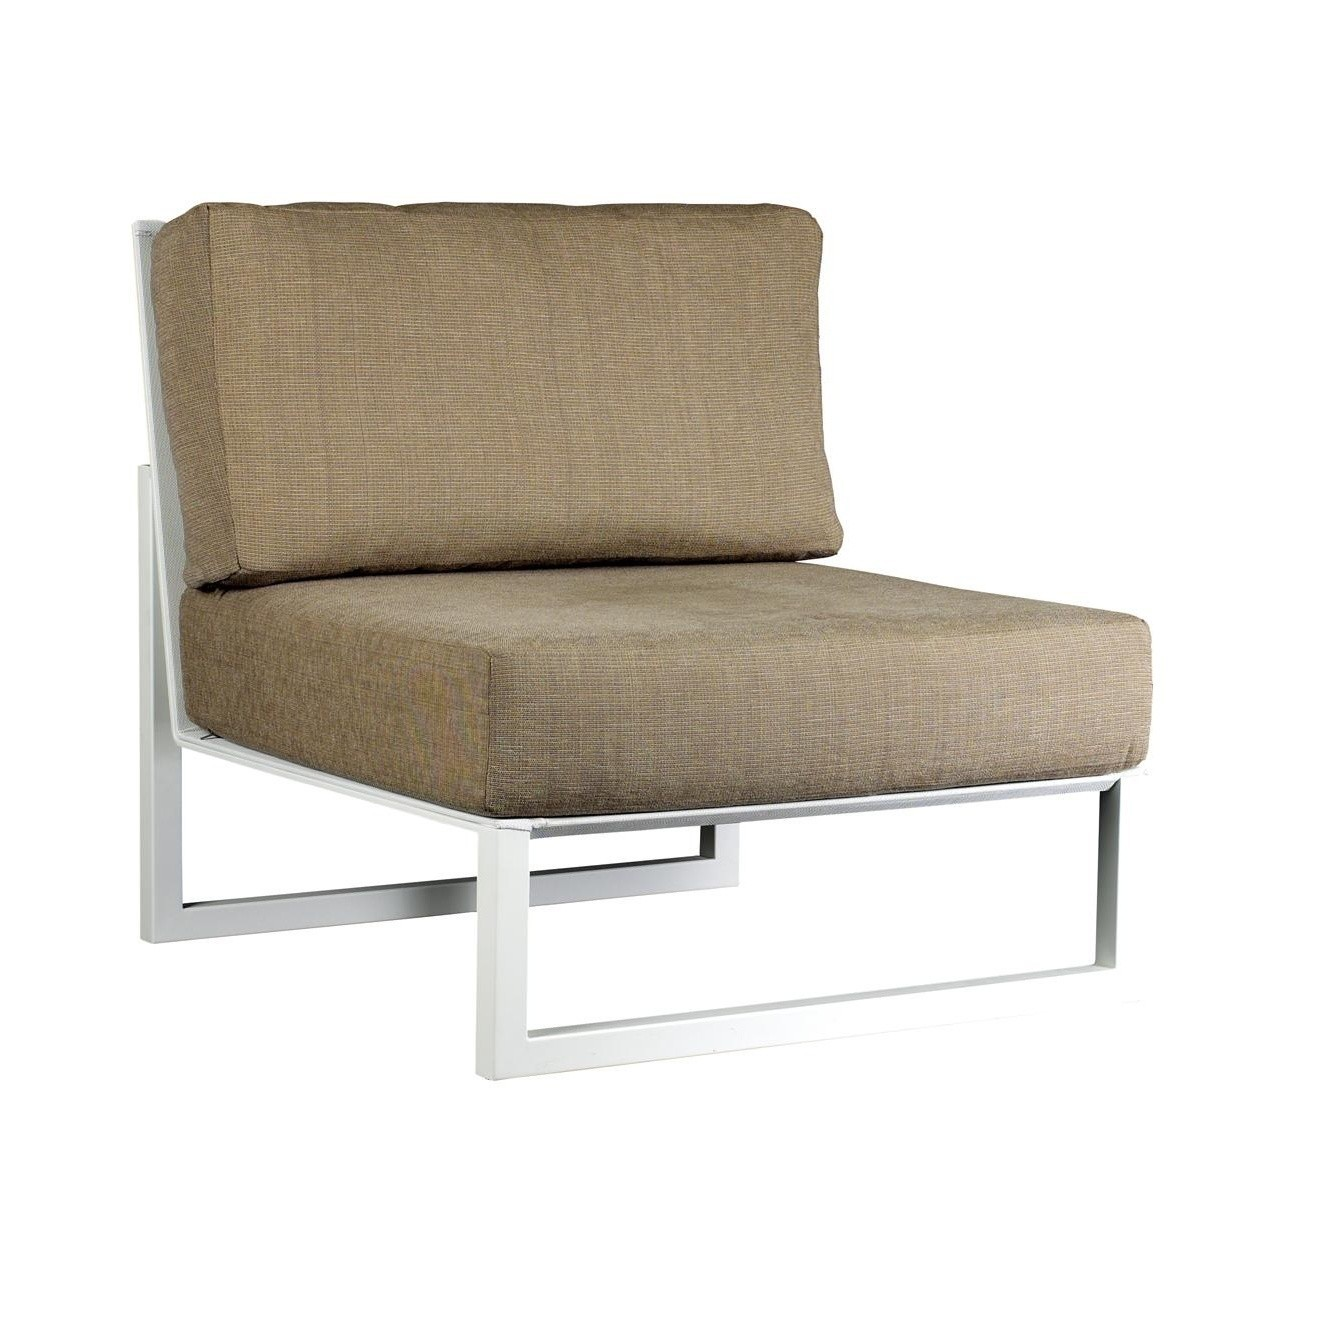 Royal Botania   Ninix Modules Lounge Sofa ...